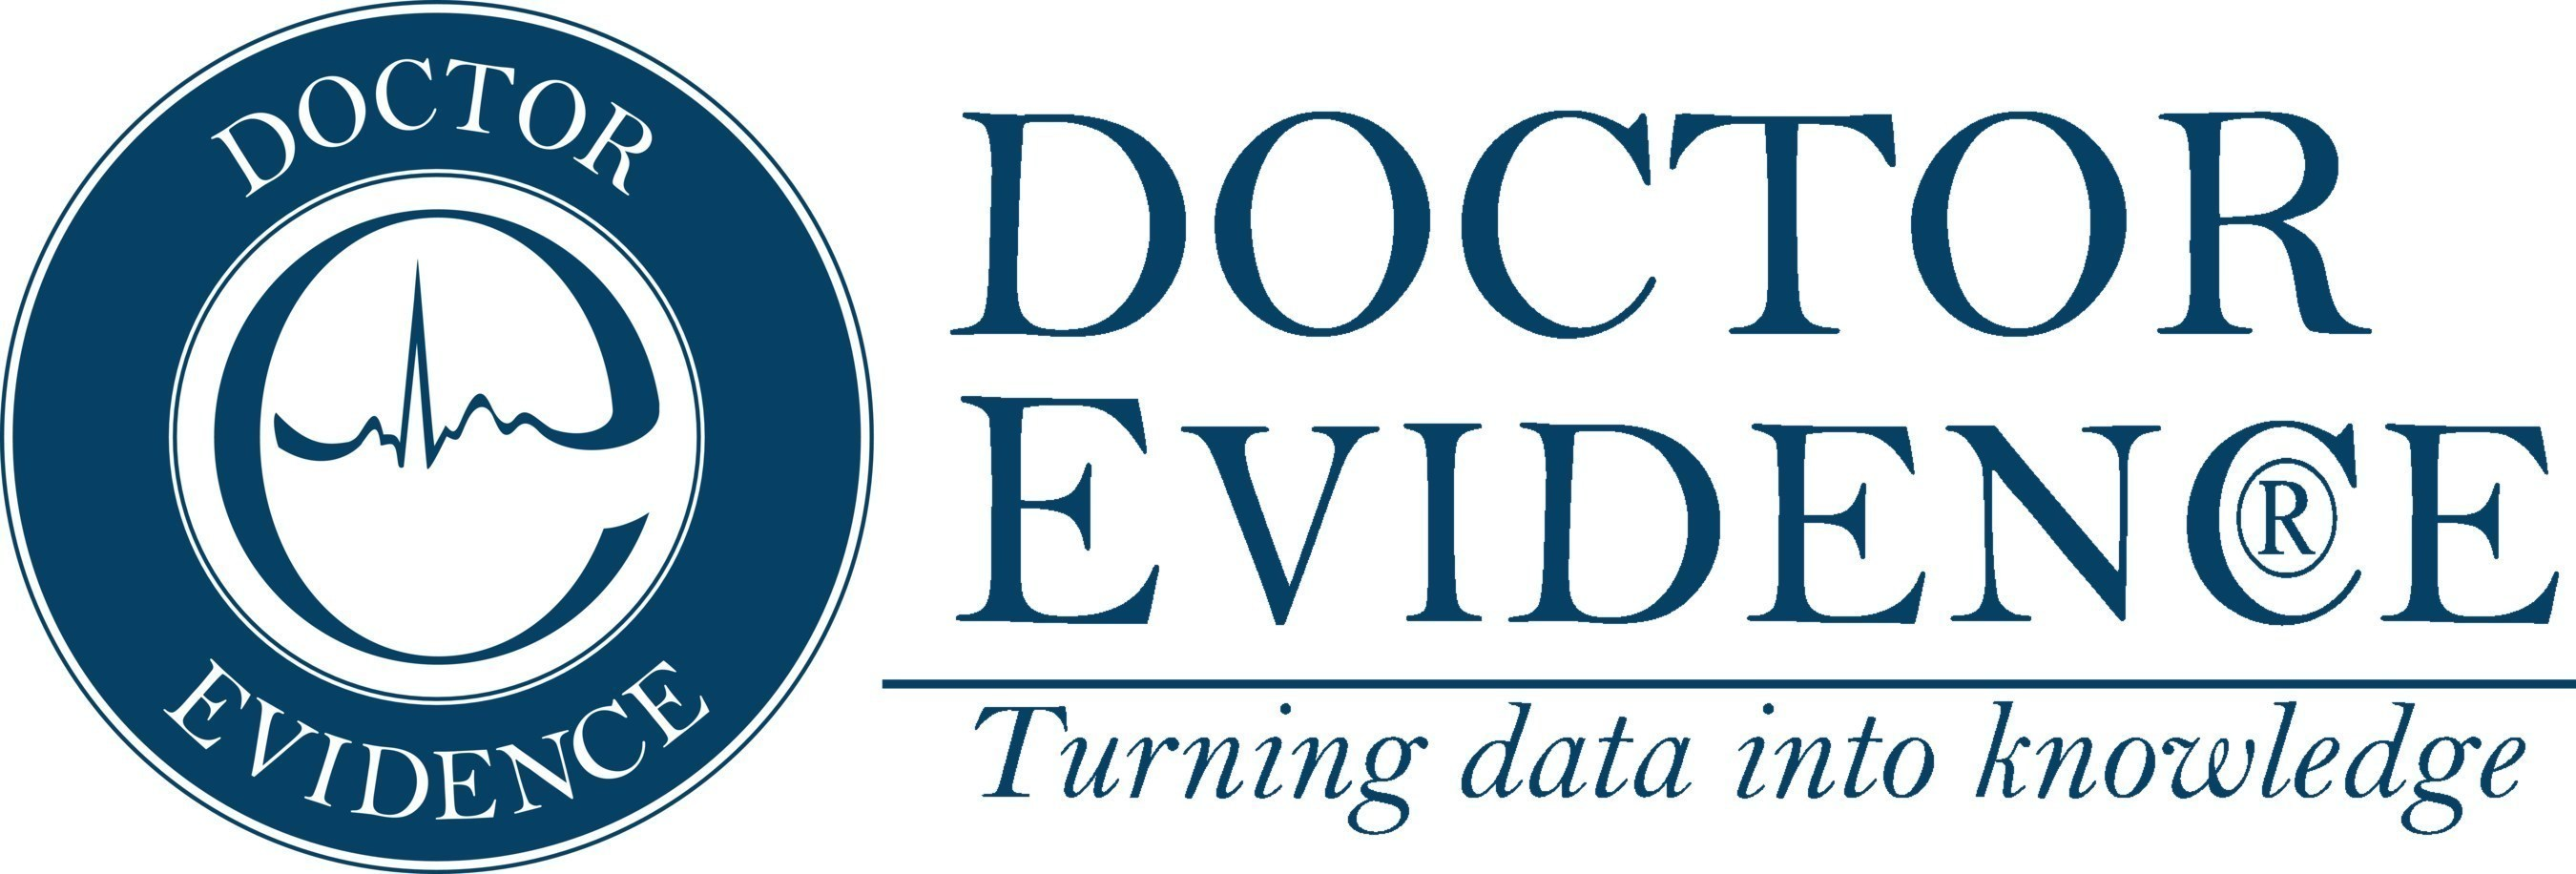 Doctor Evidence to Provide CVS Health with Reliable Evidence Analyses to Support Formulary Decisions and Policies